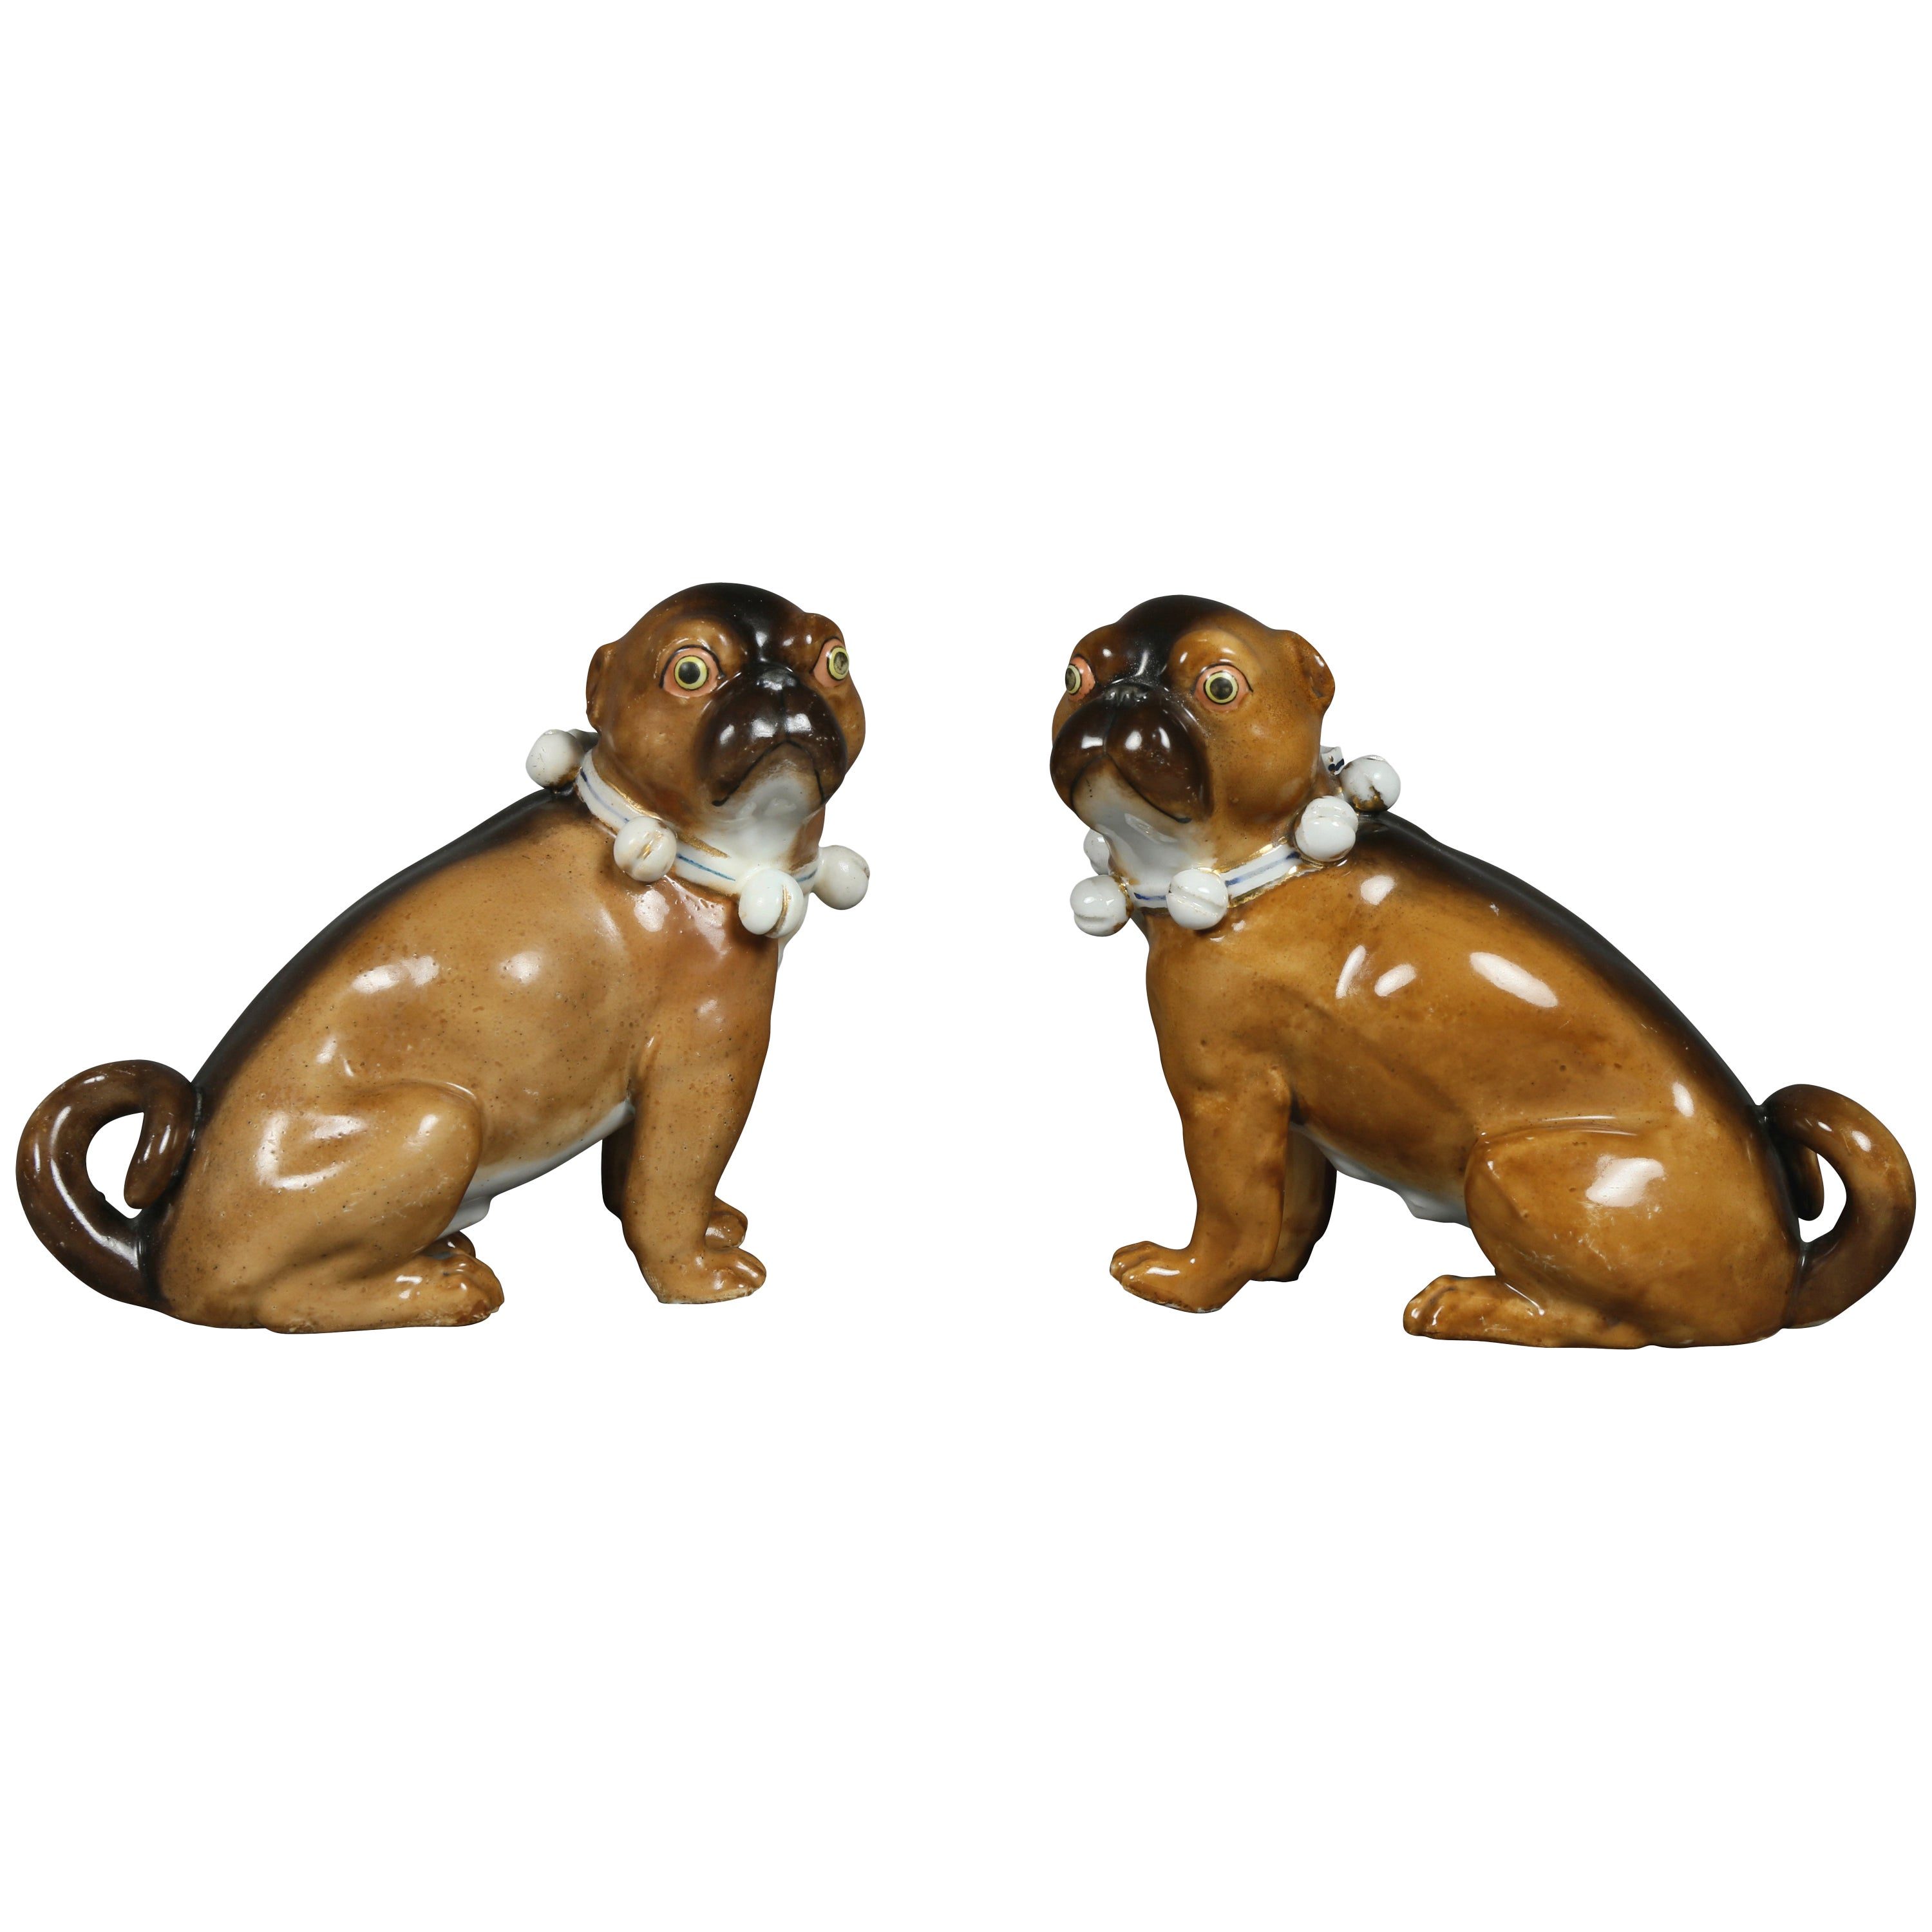 Pair of German Porcelain Figures of Seated Pugs